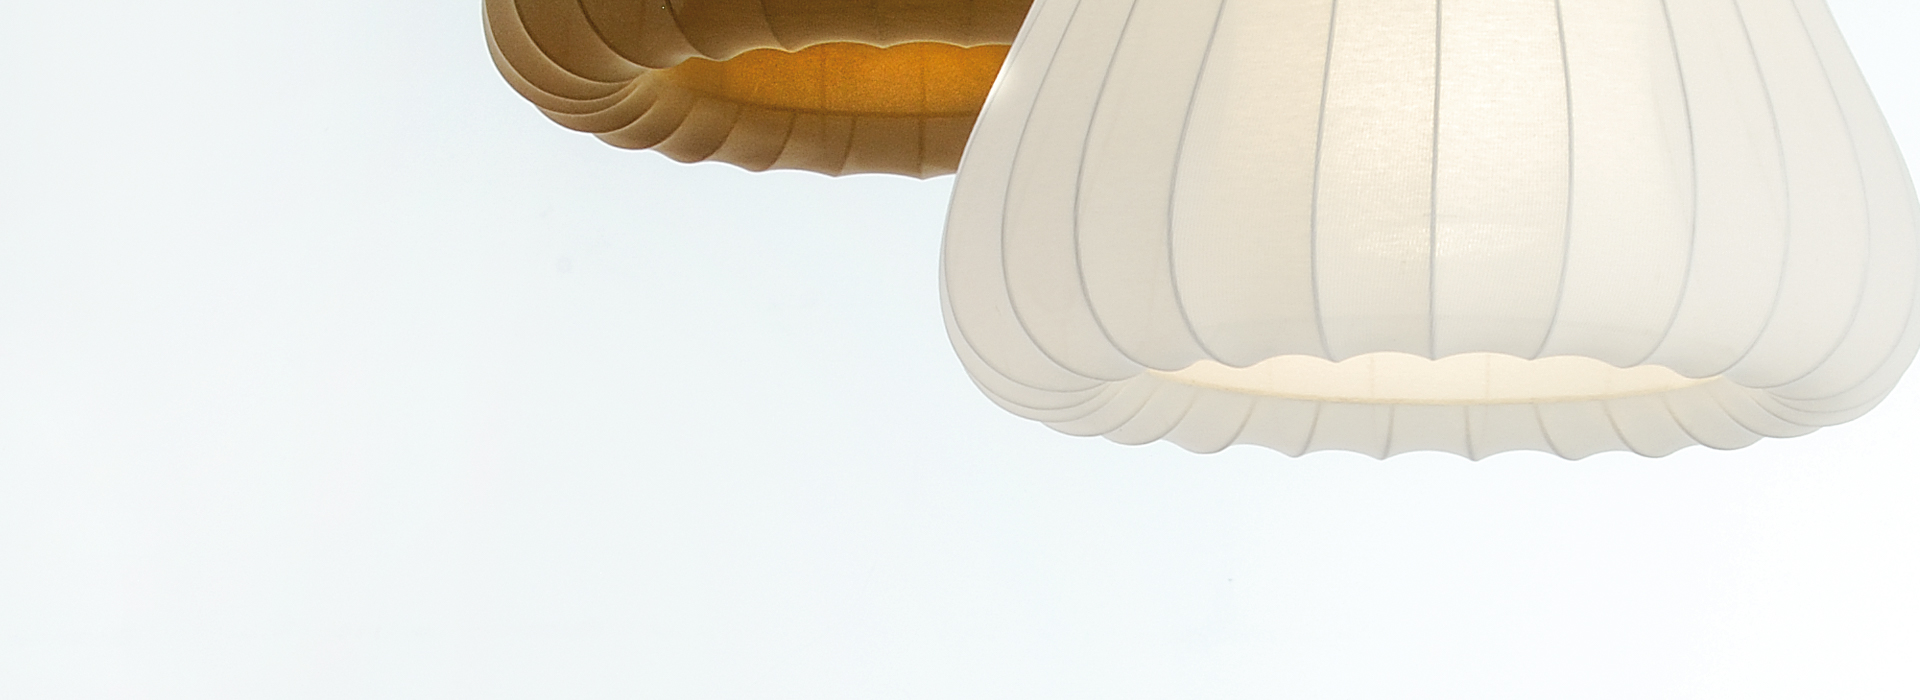 Fambuena - Zaneen: supplier for fabric and material design lighting in North America